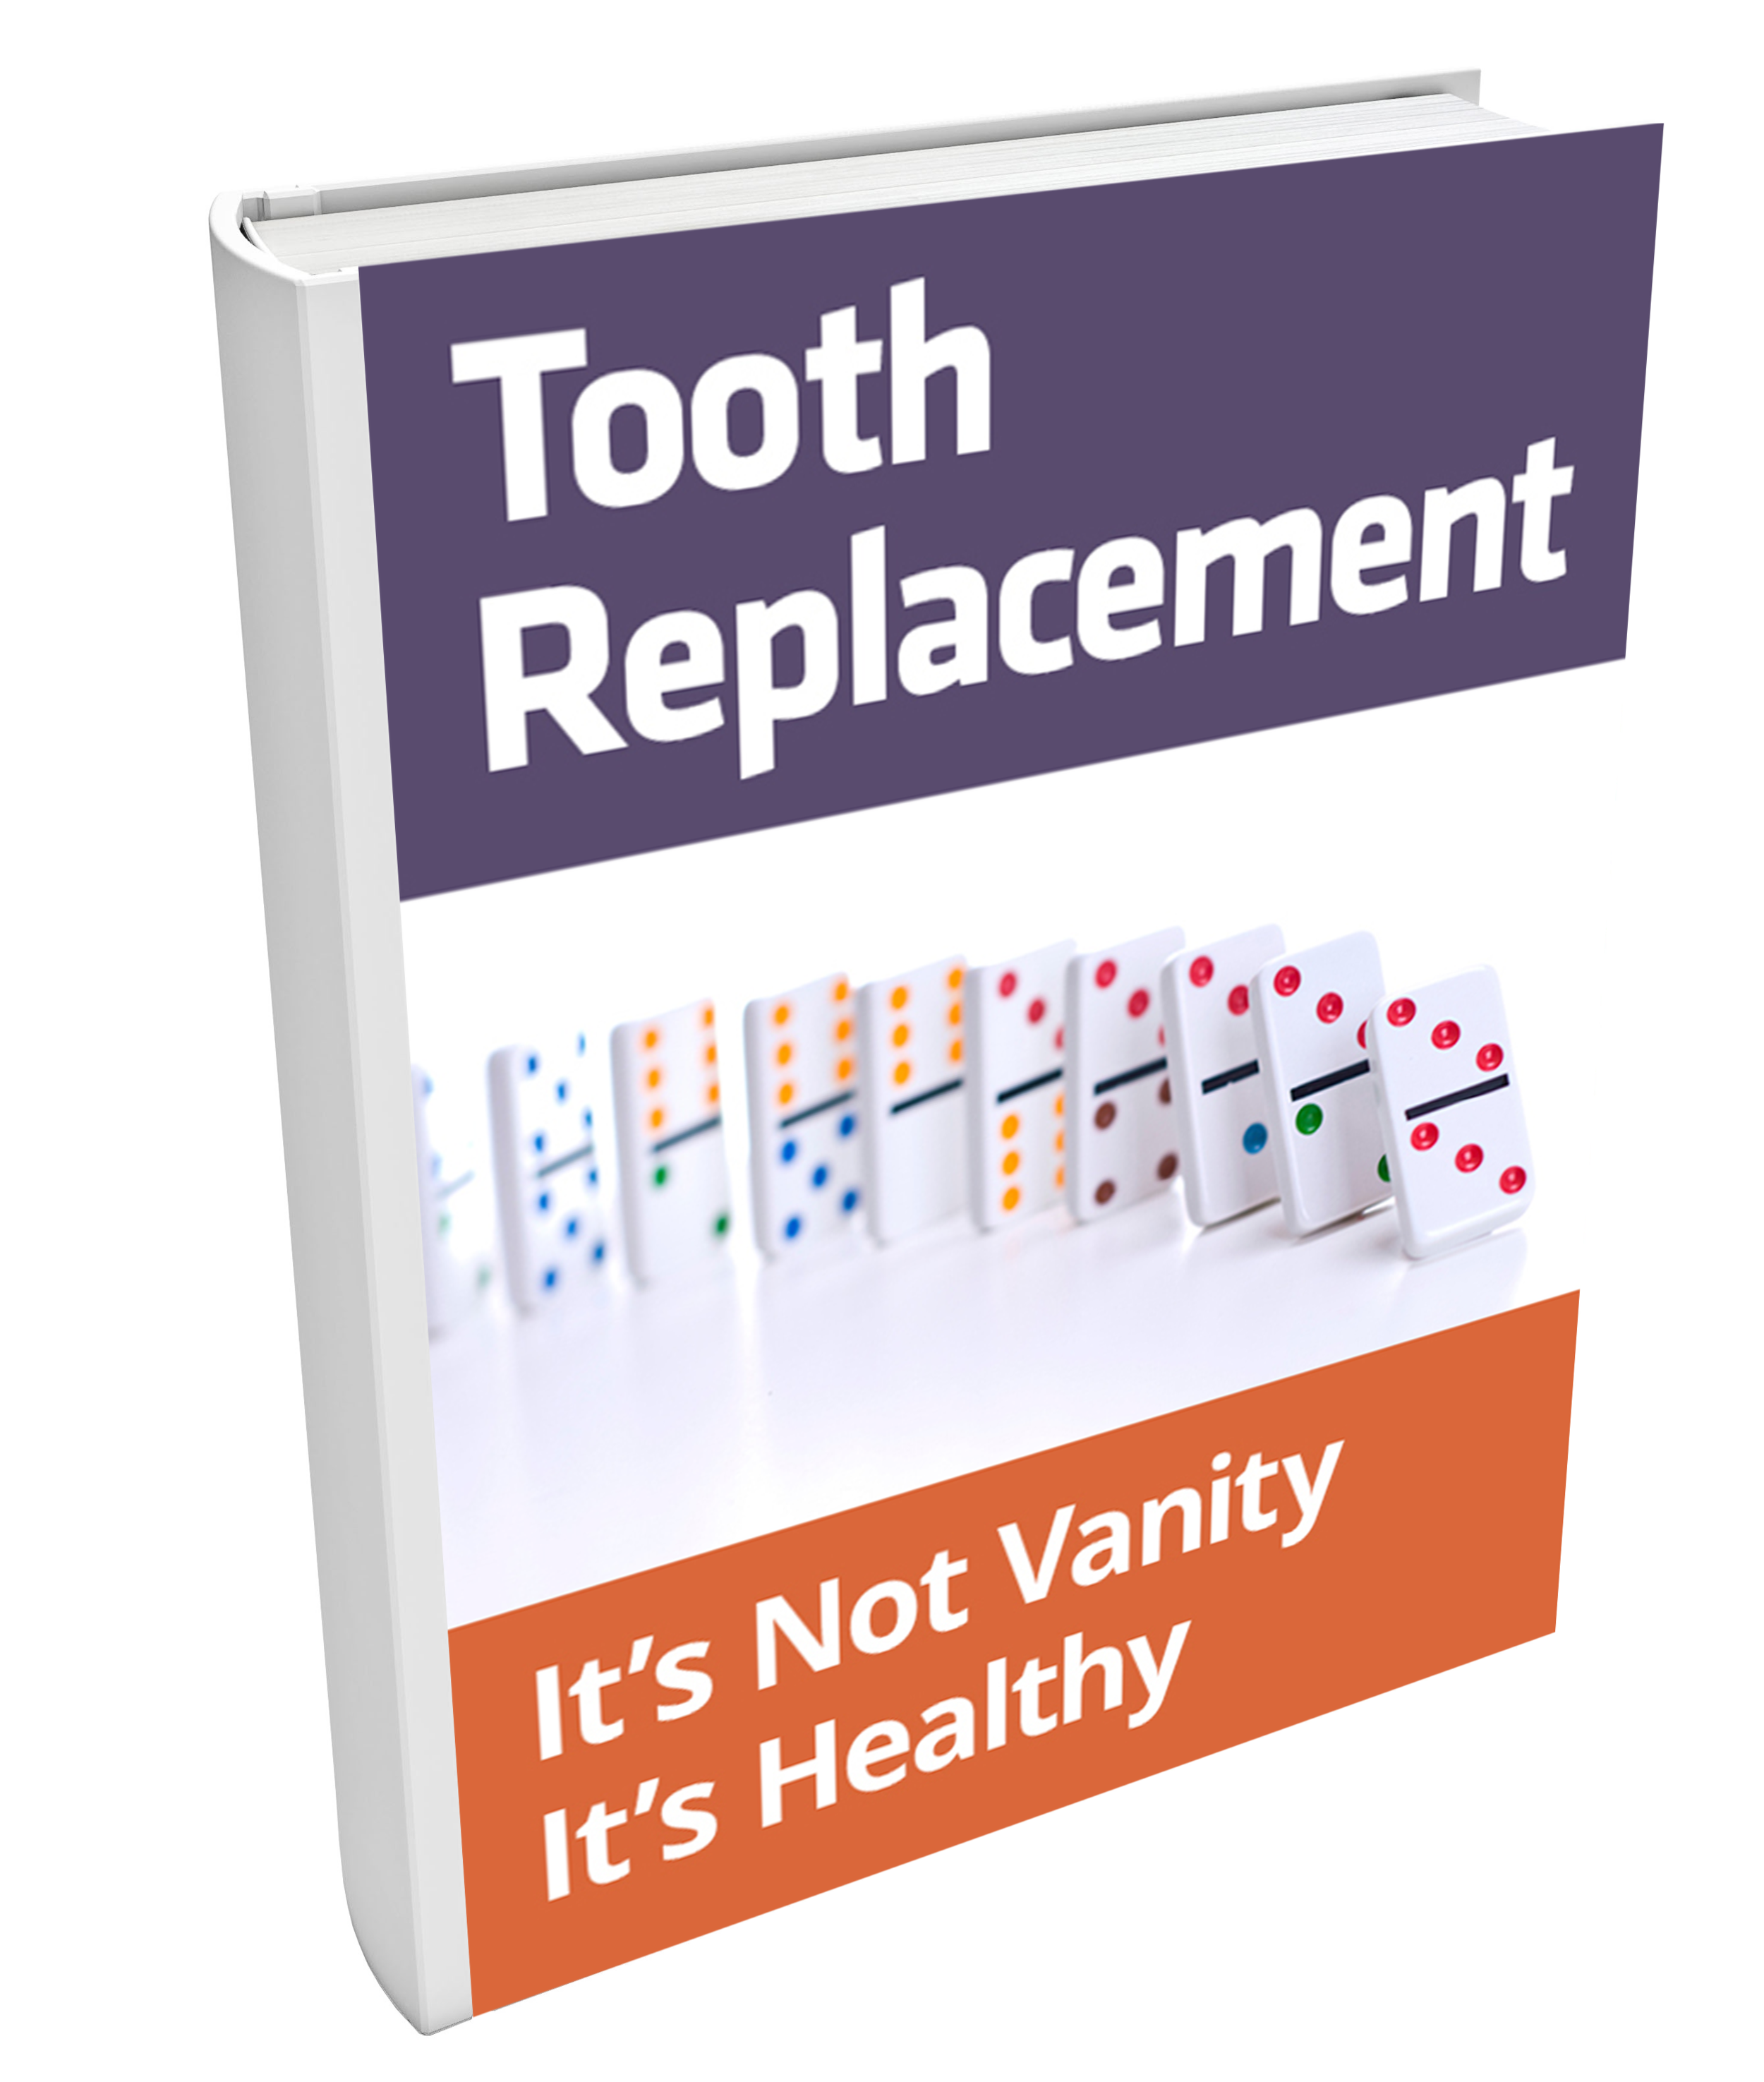 Learn about your tooth replacement options in our free eBook.